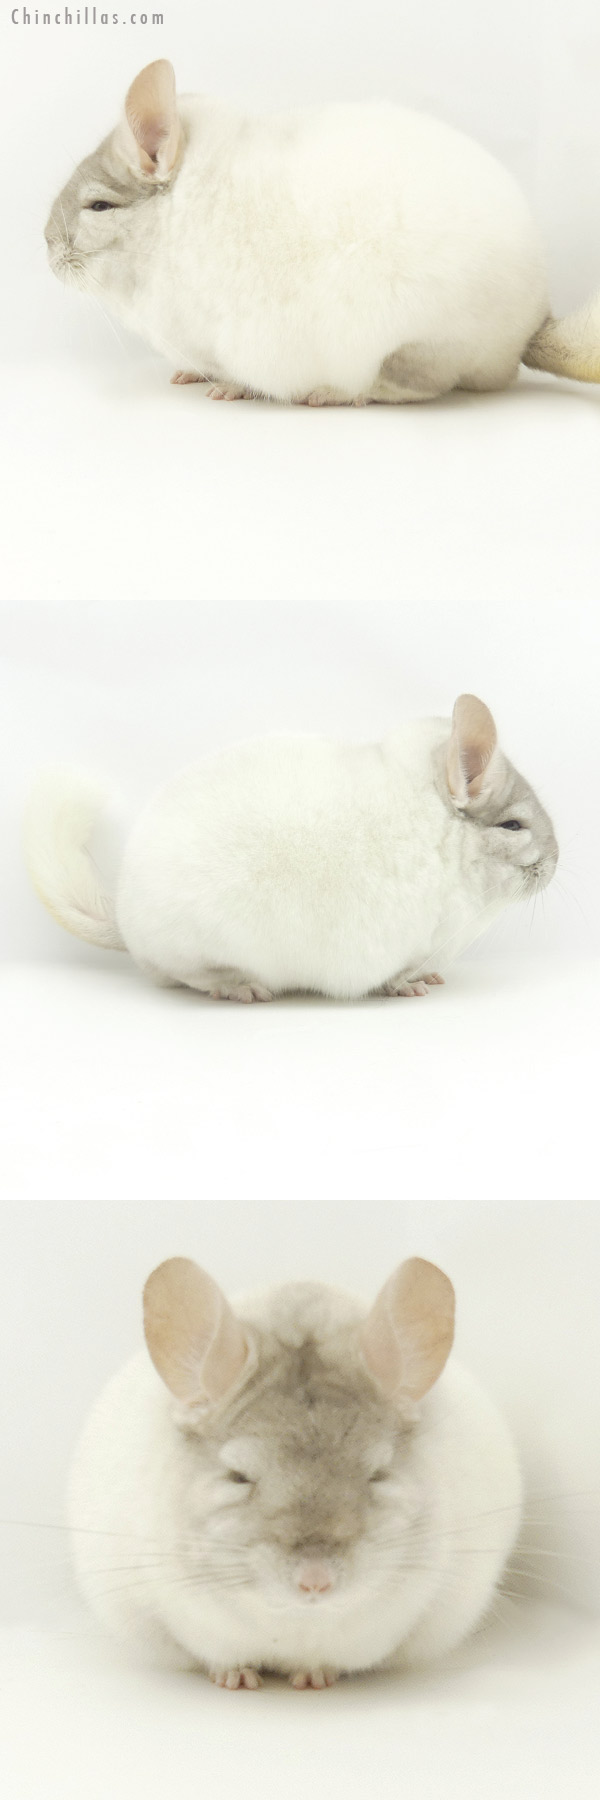 19371 Large Blocky Herd Improvement Quality Section Champion Pink White Male Chinchilla